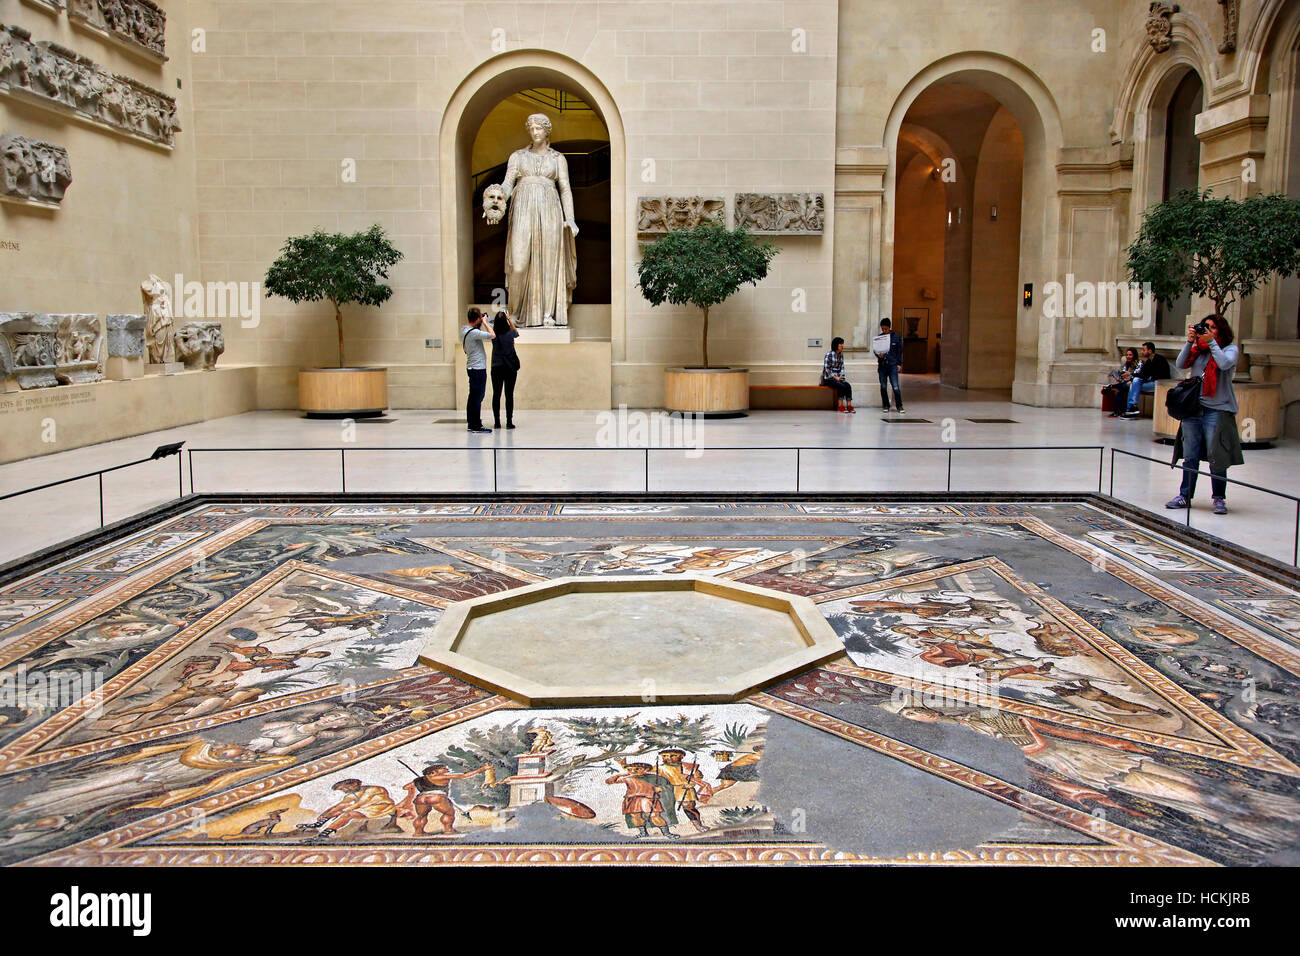 The Sphinx courtyard, with the 'Seasons' mosaic floor and a statue of Melpomene, Denon wing, Louvre museum, - Stock Image